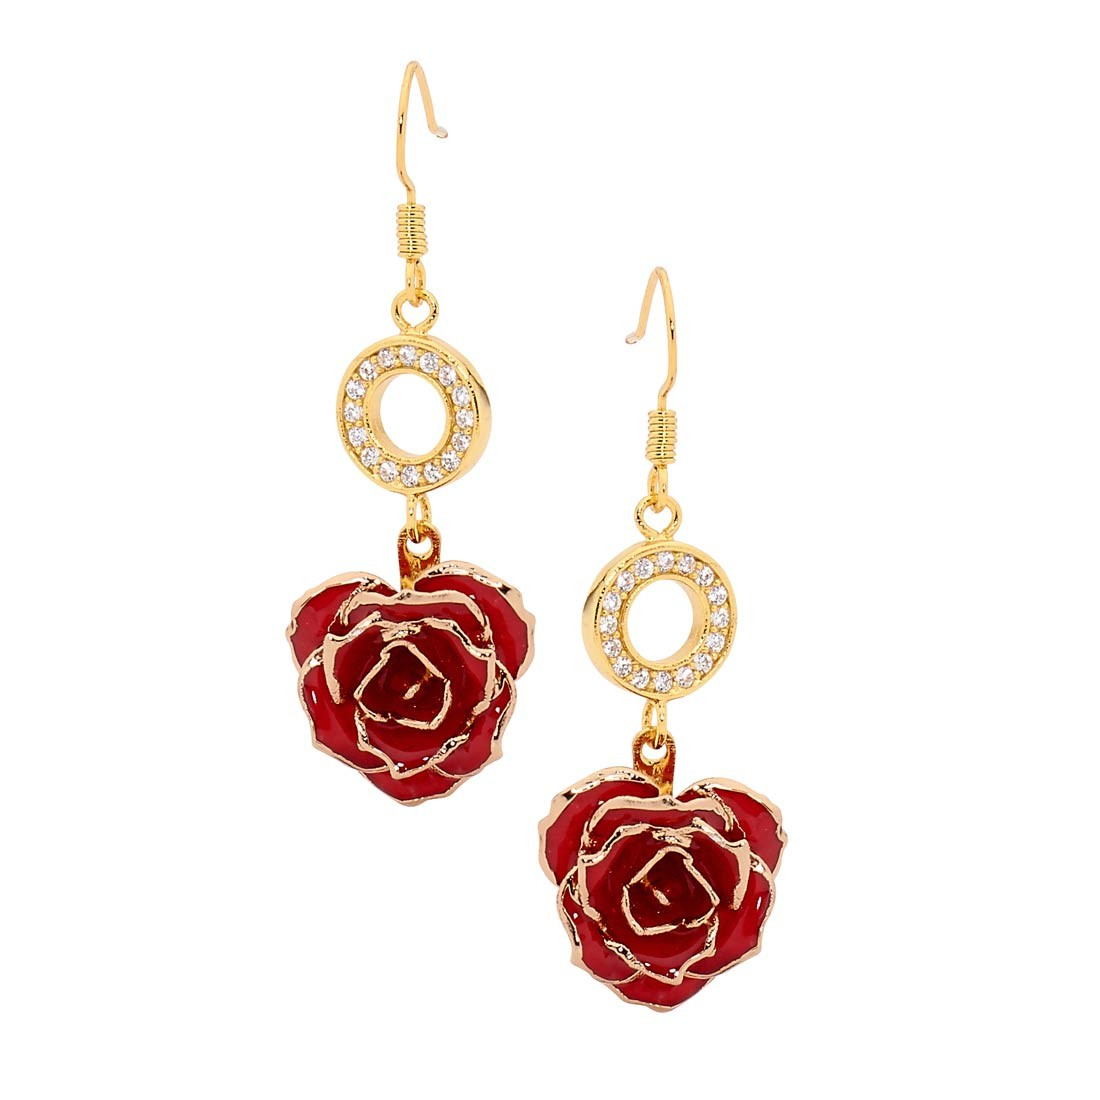 Glazed Rose Earrings in 24K Gold